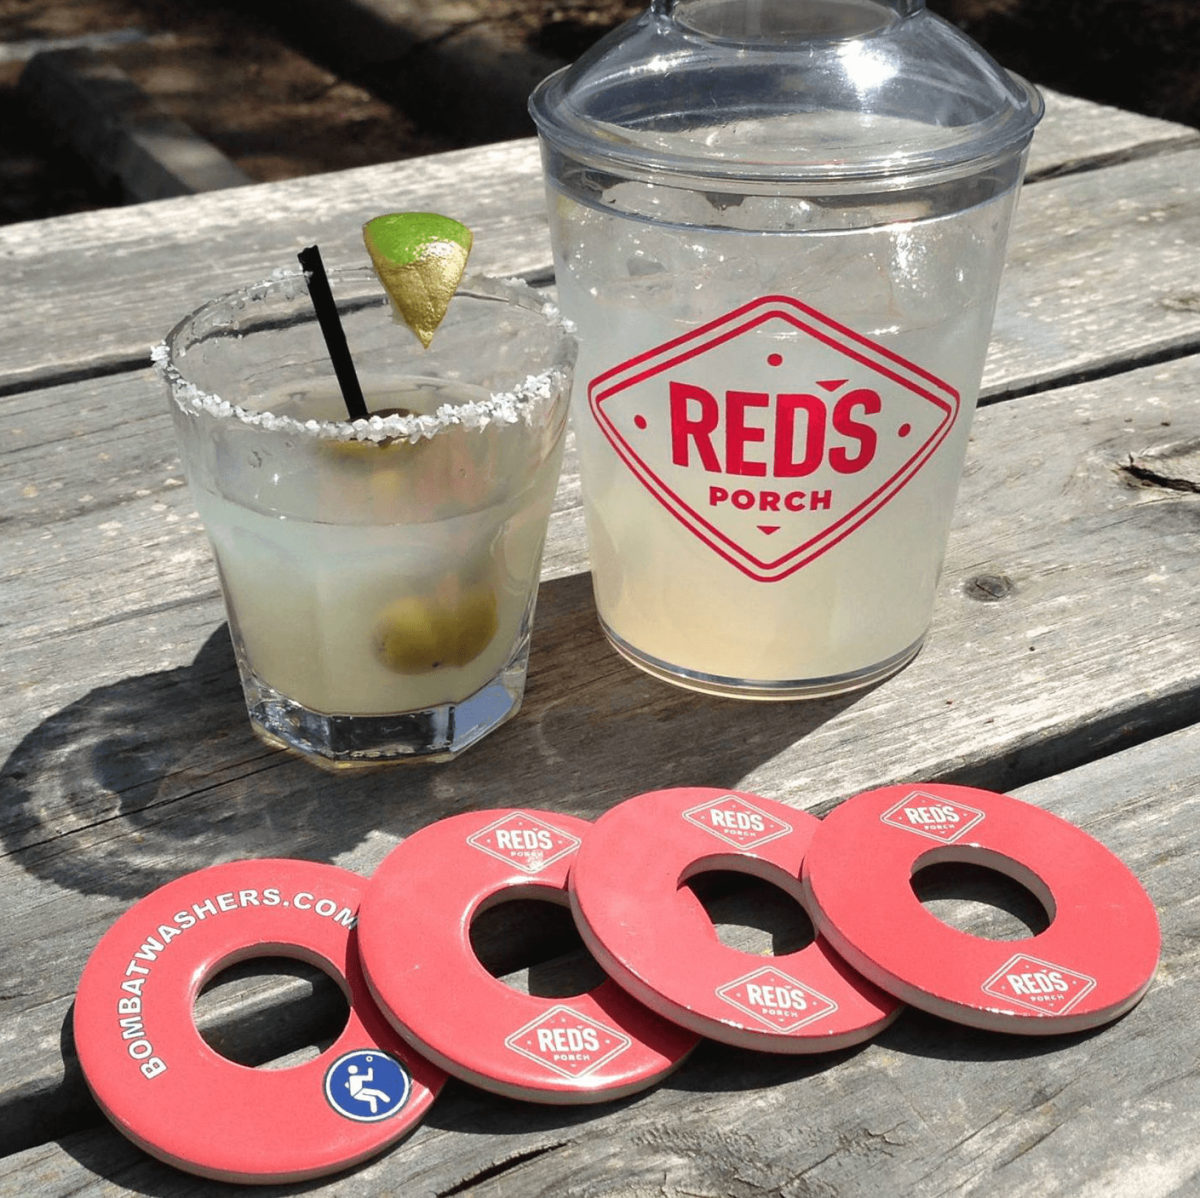 Red's Porch margarita washers game